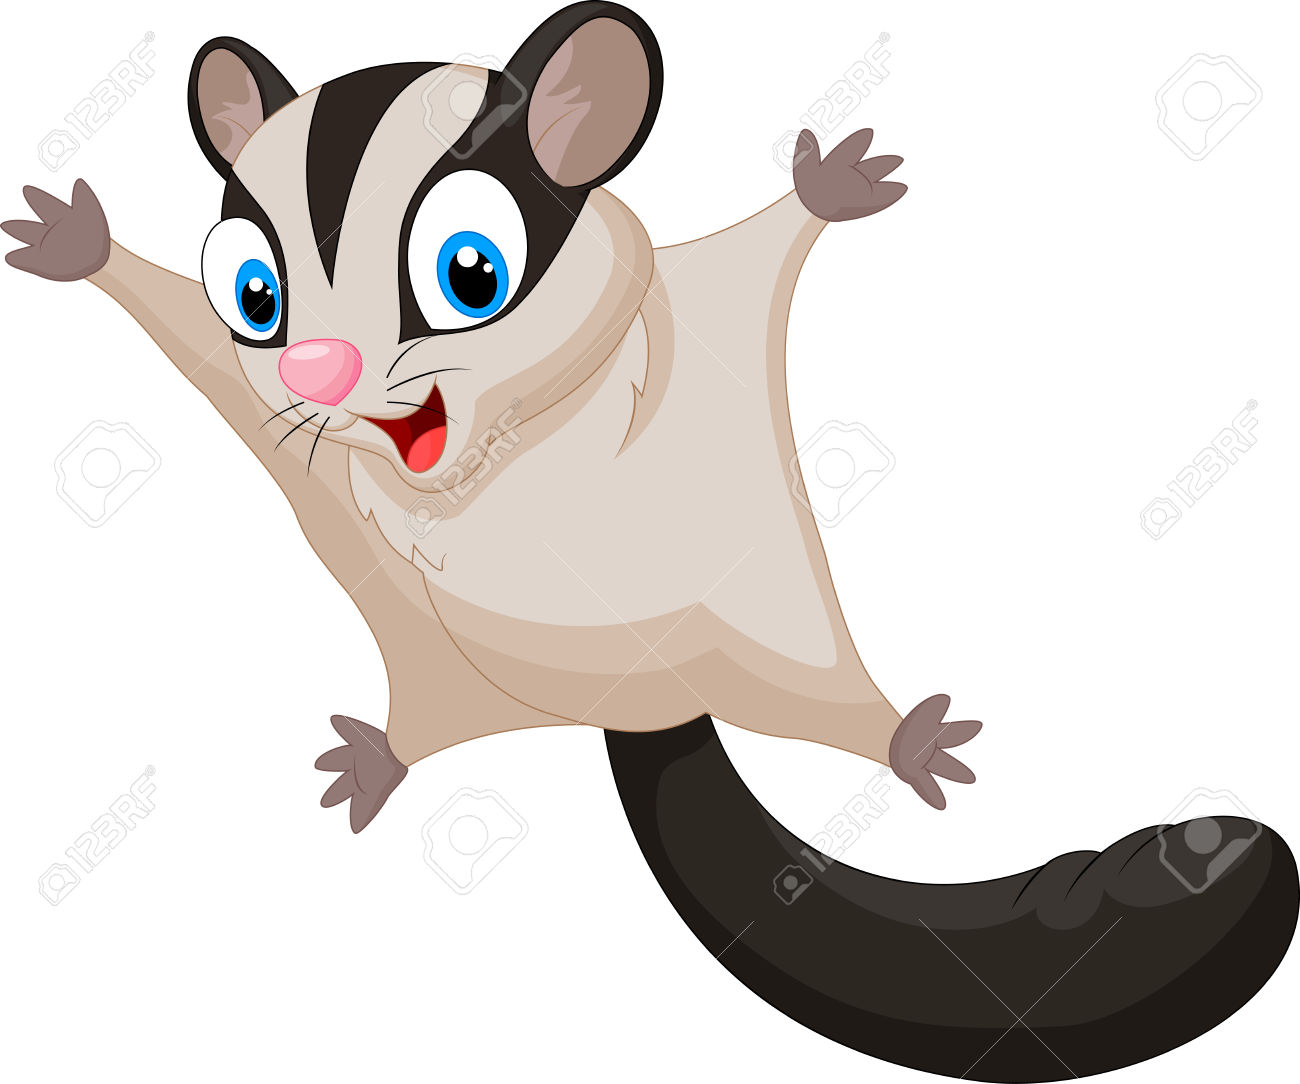 Flying Squirrel clipart #9, Download drawings